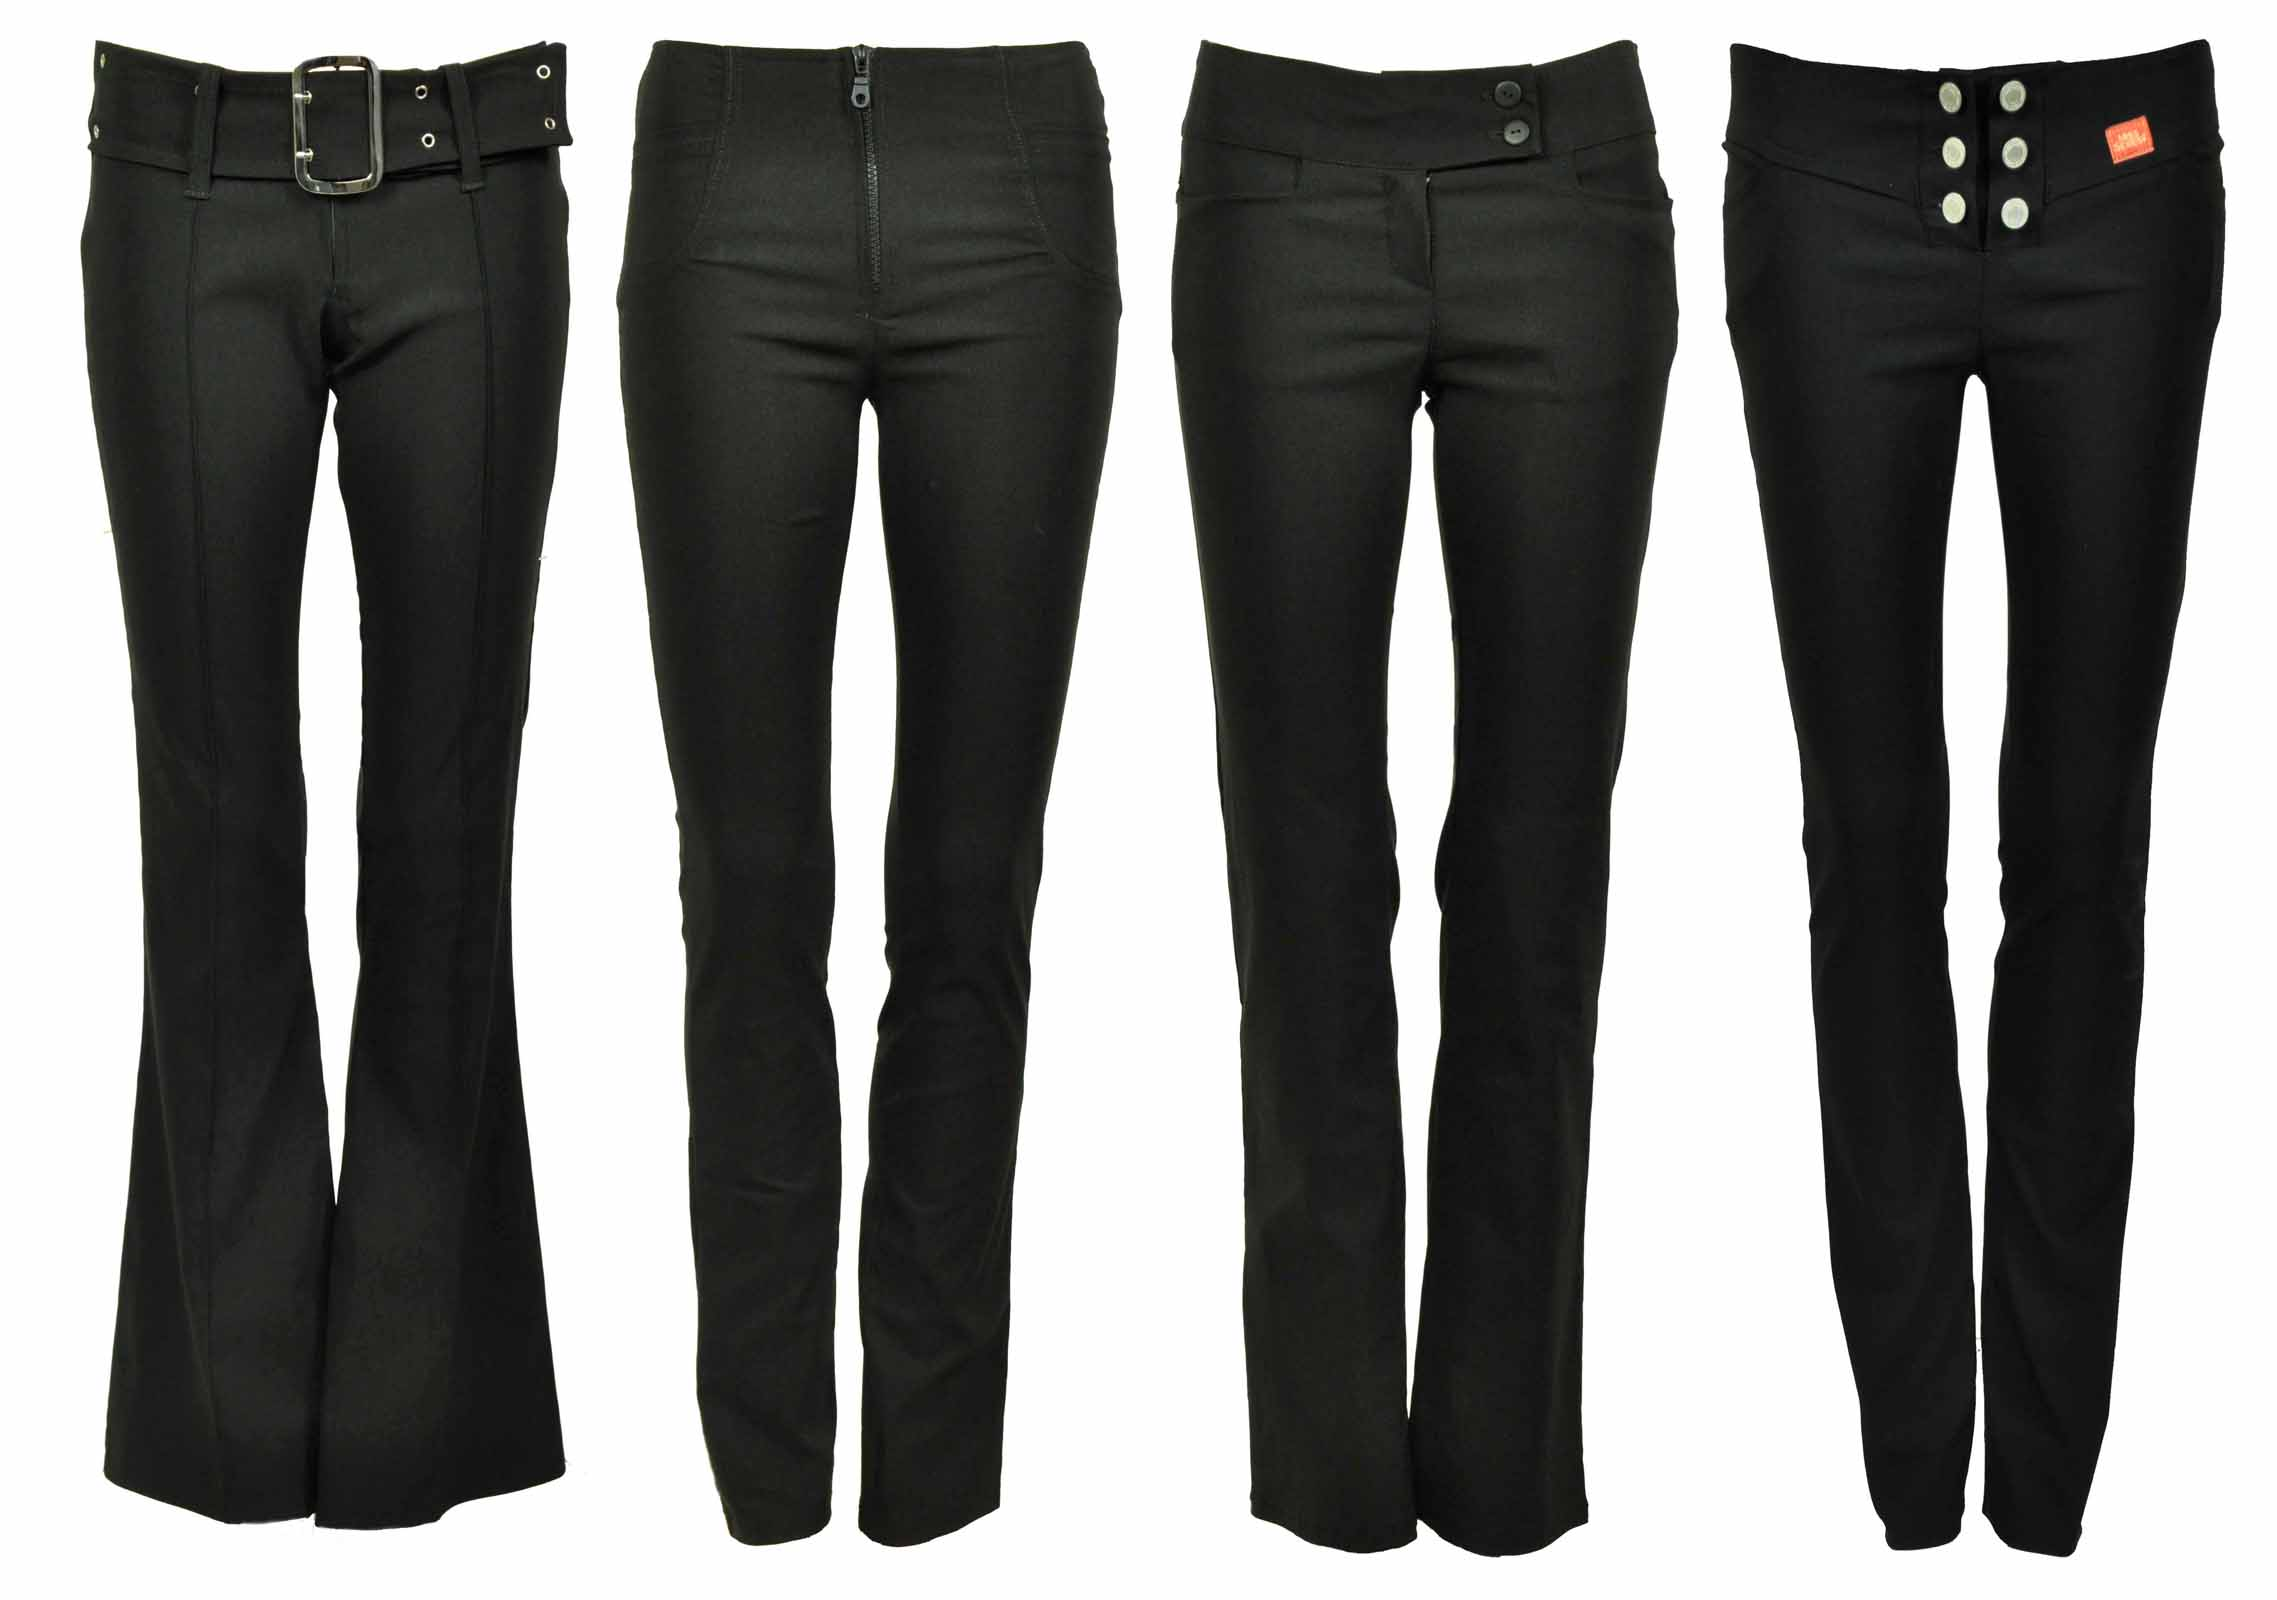 ladies trousers new-womens-plain-black-stretch-hipster-ladies-trousers frgflry